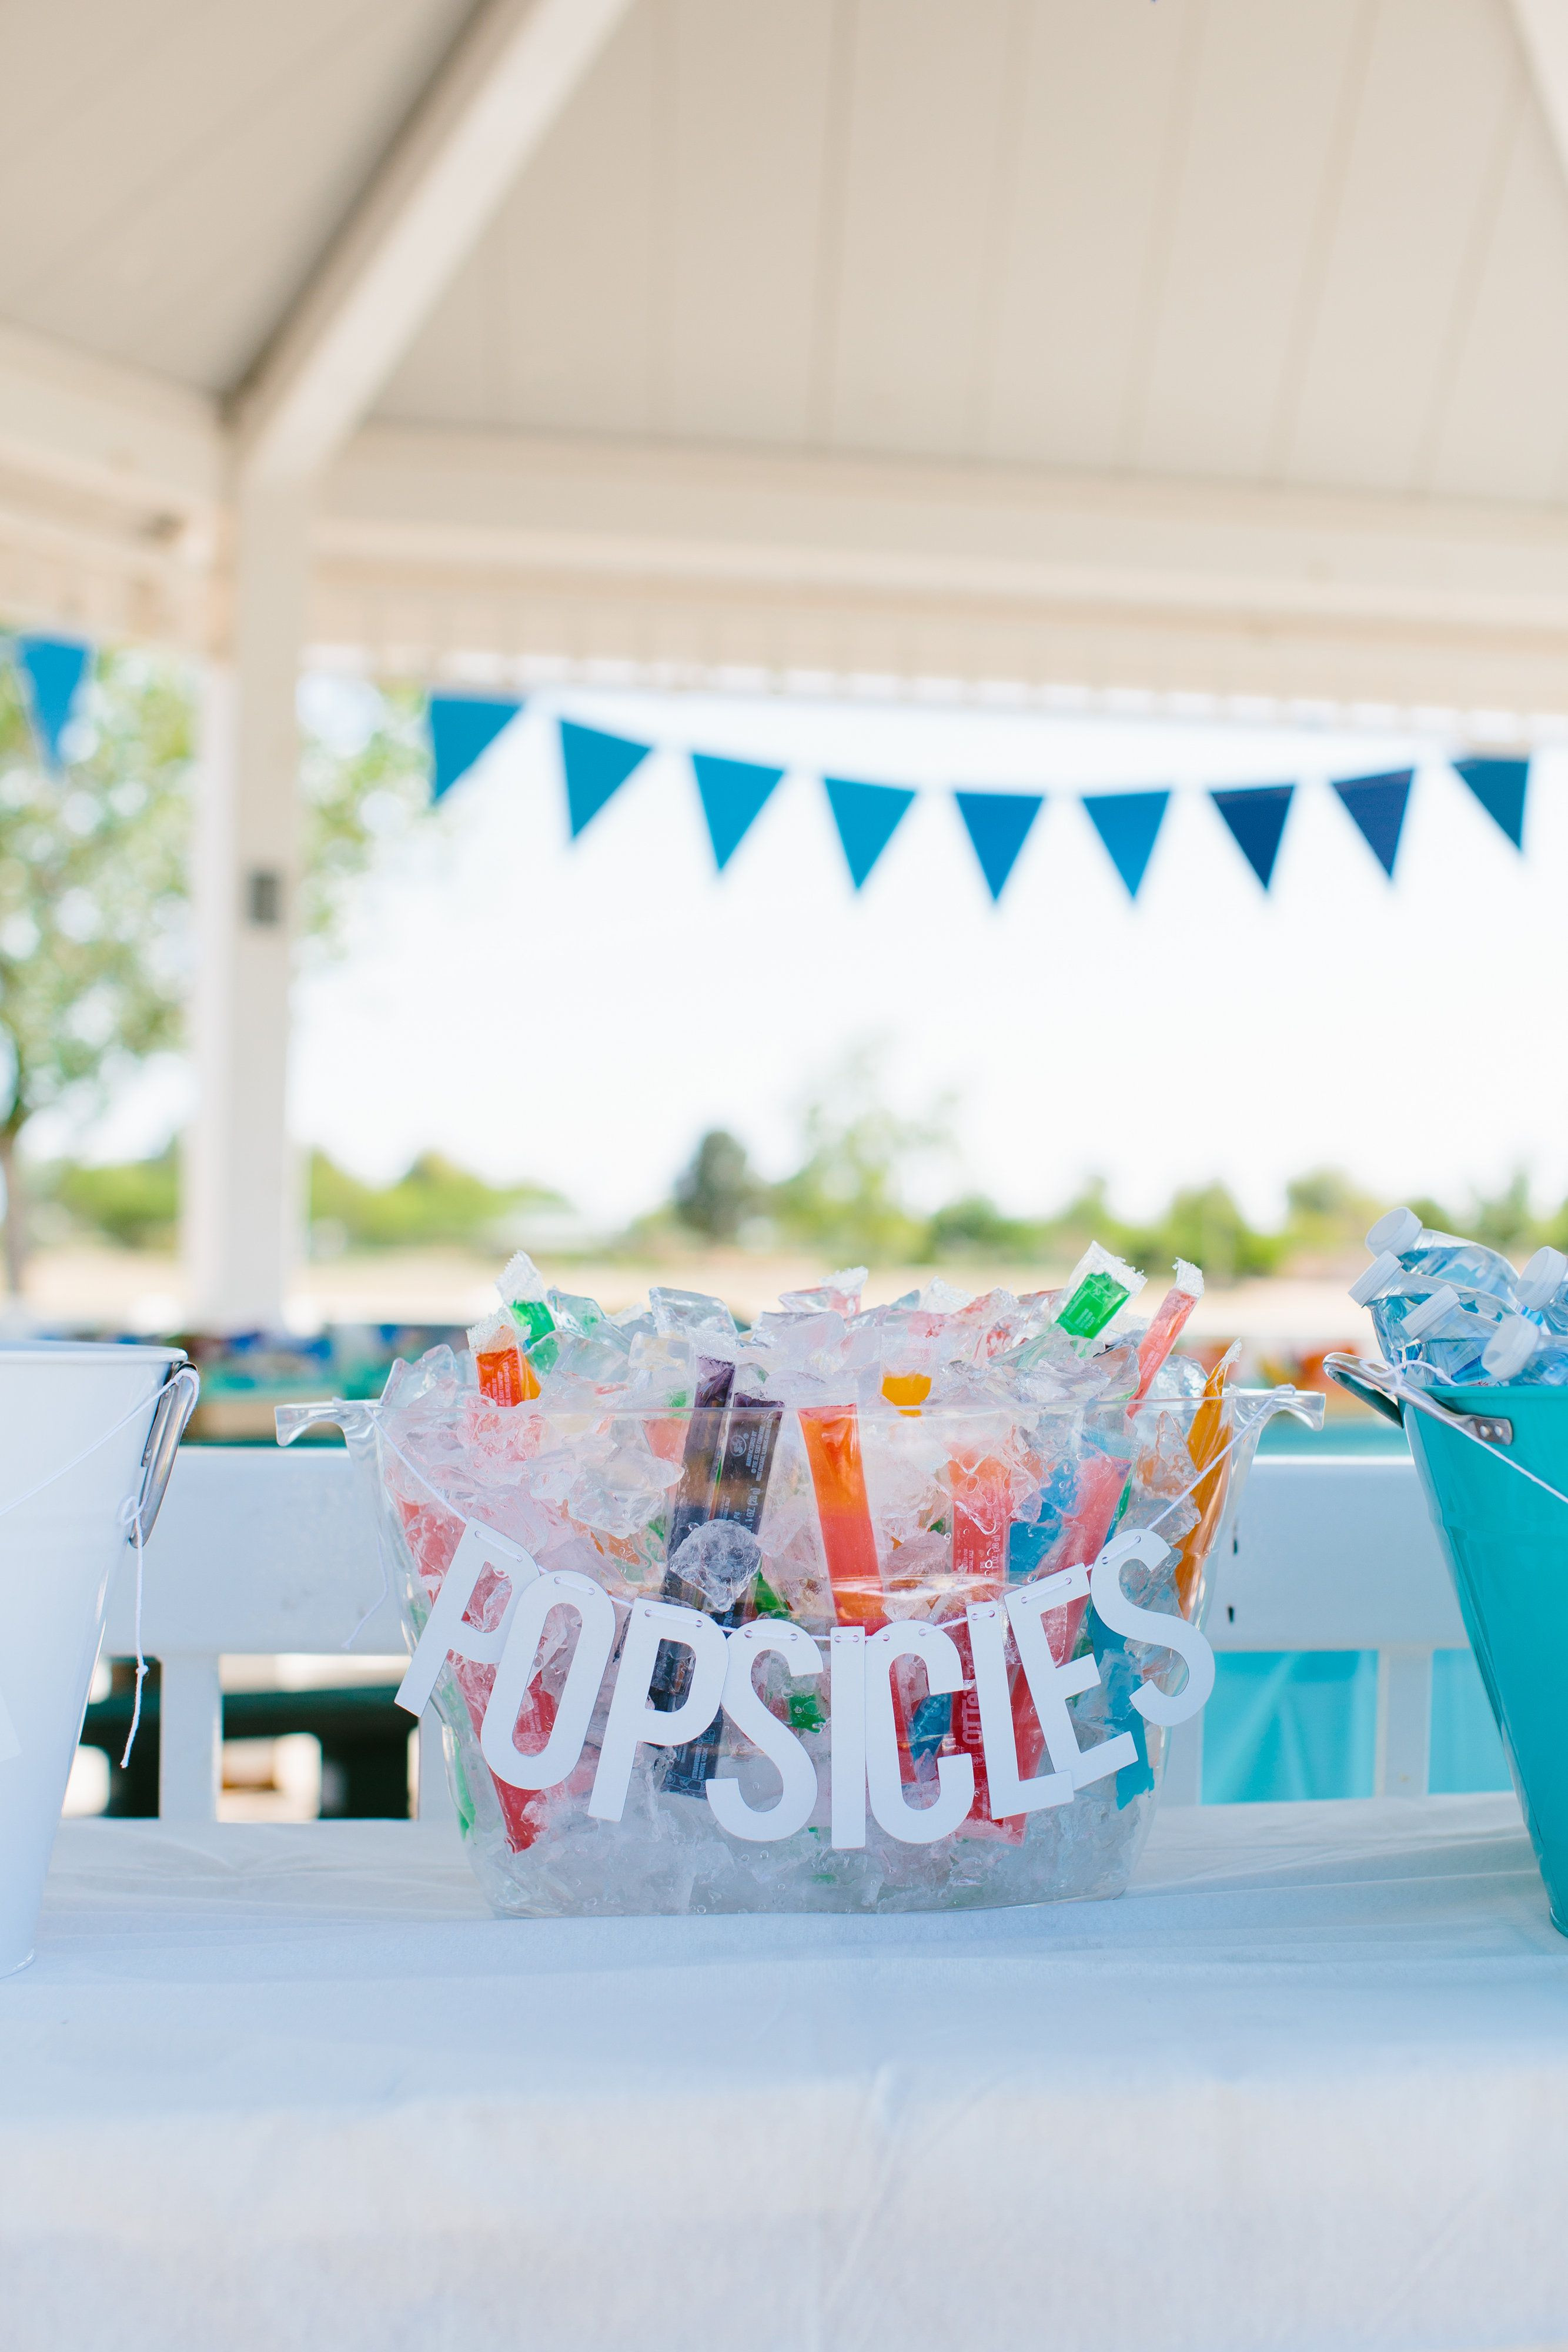 Summer Birthday Party Ideas For 4 Year Old Boy  A First Birthday Picnic in the Park